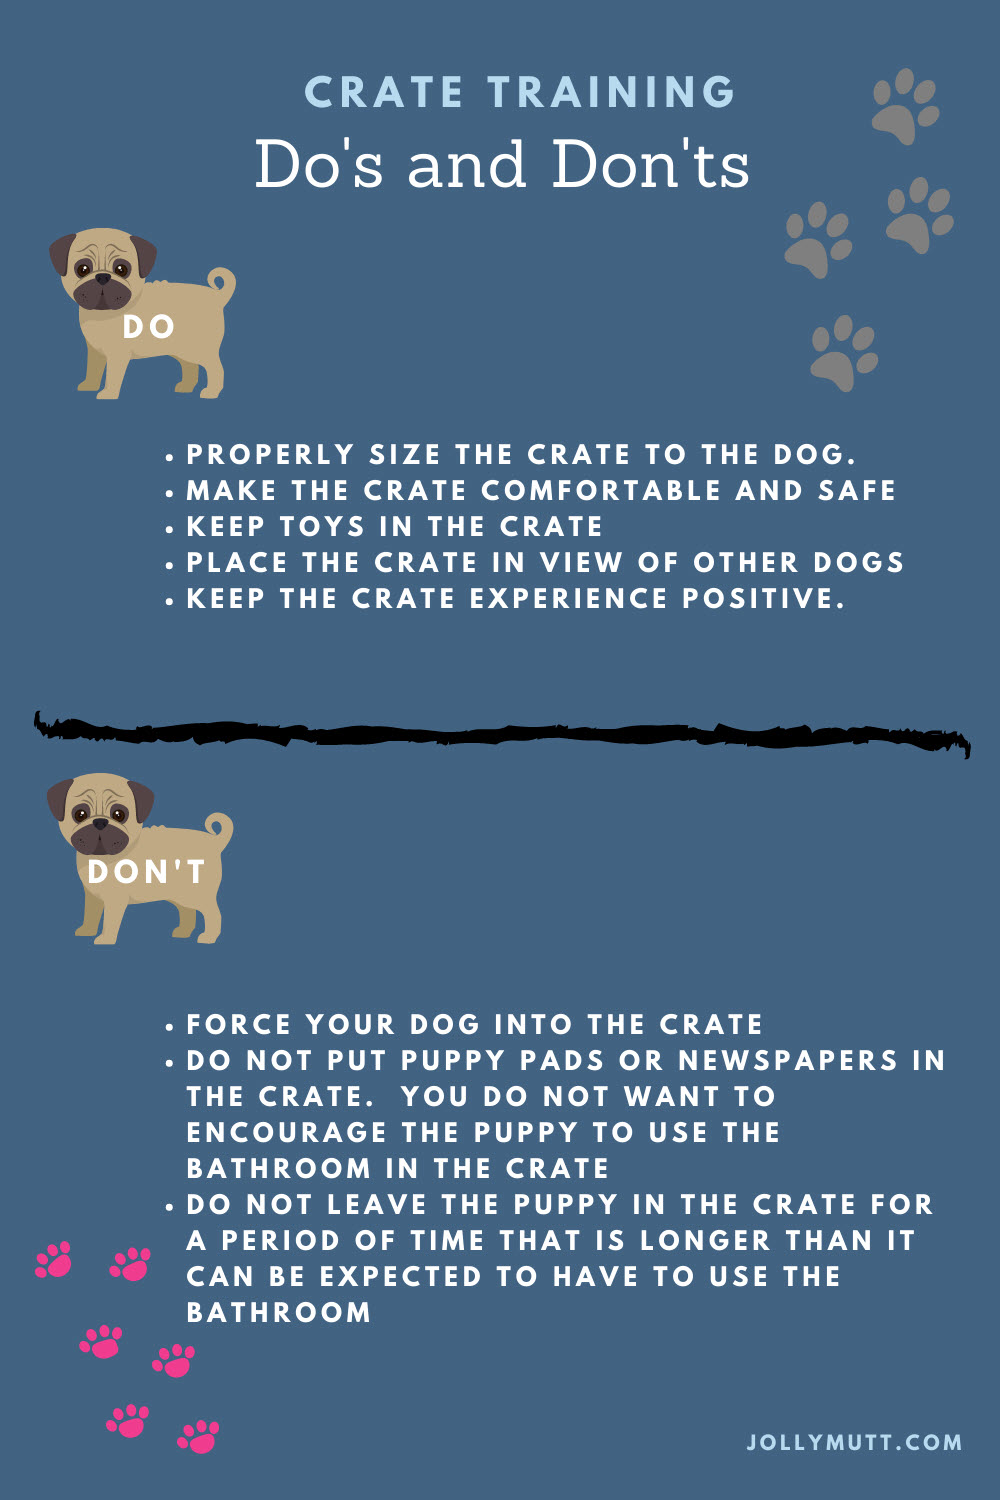 Crate Training dos and don'ts